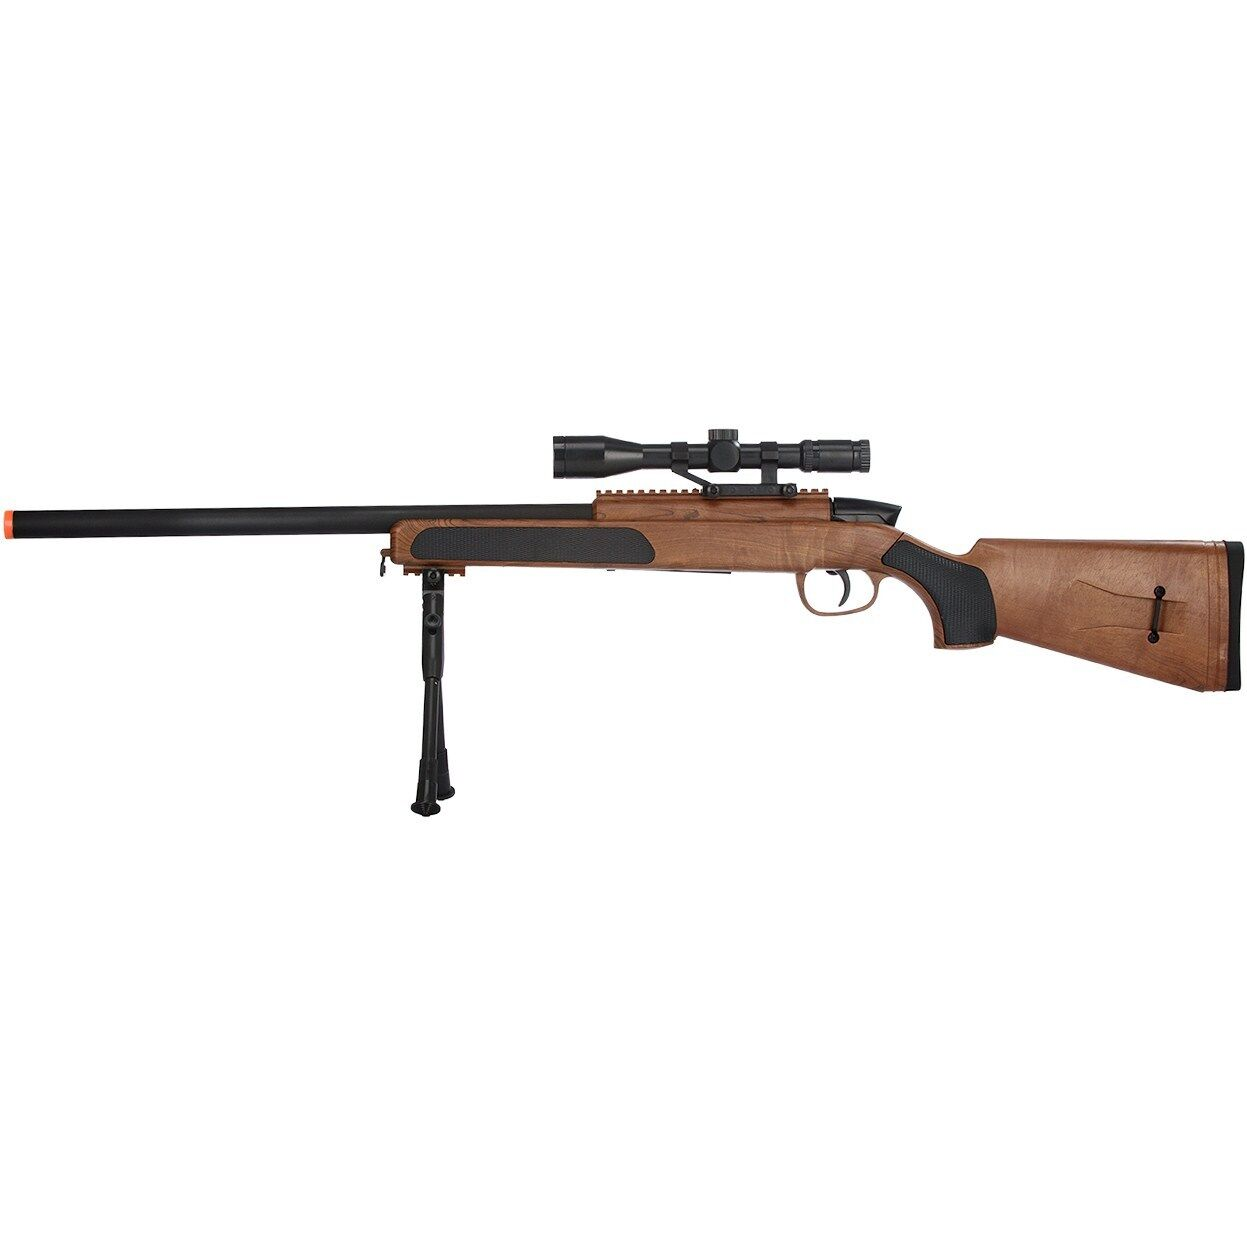 CYMA MK51 WOOD BOLT ACTION METAL SPRING AIRSOFT SNIPER RIFLE